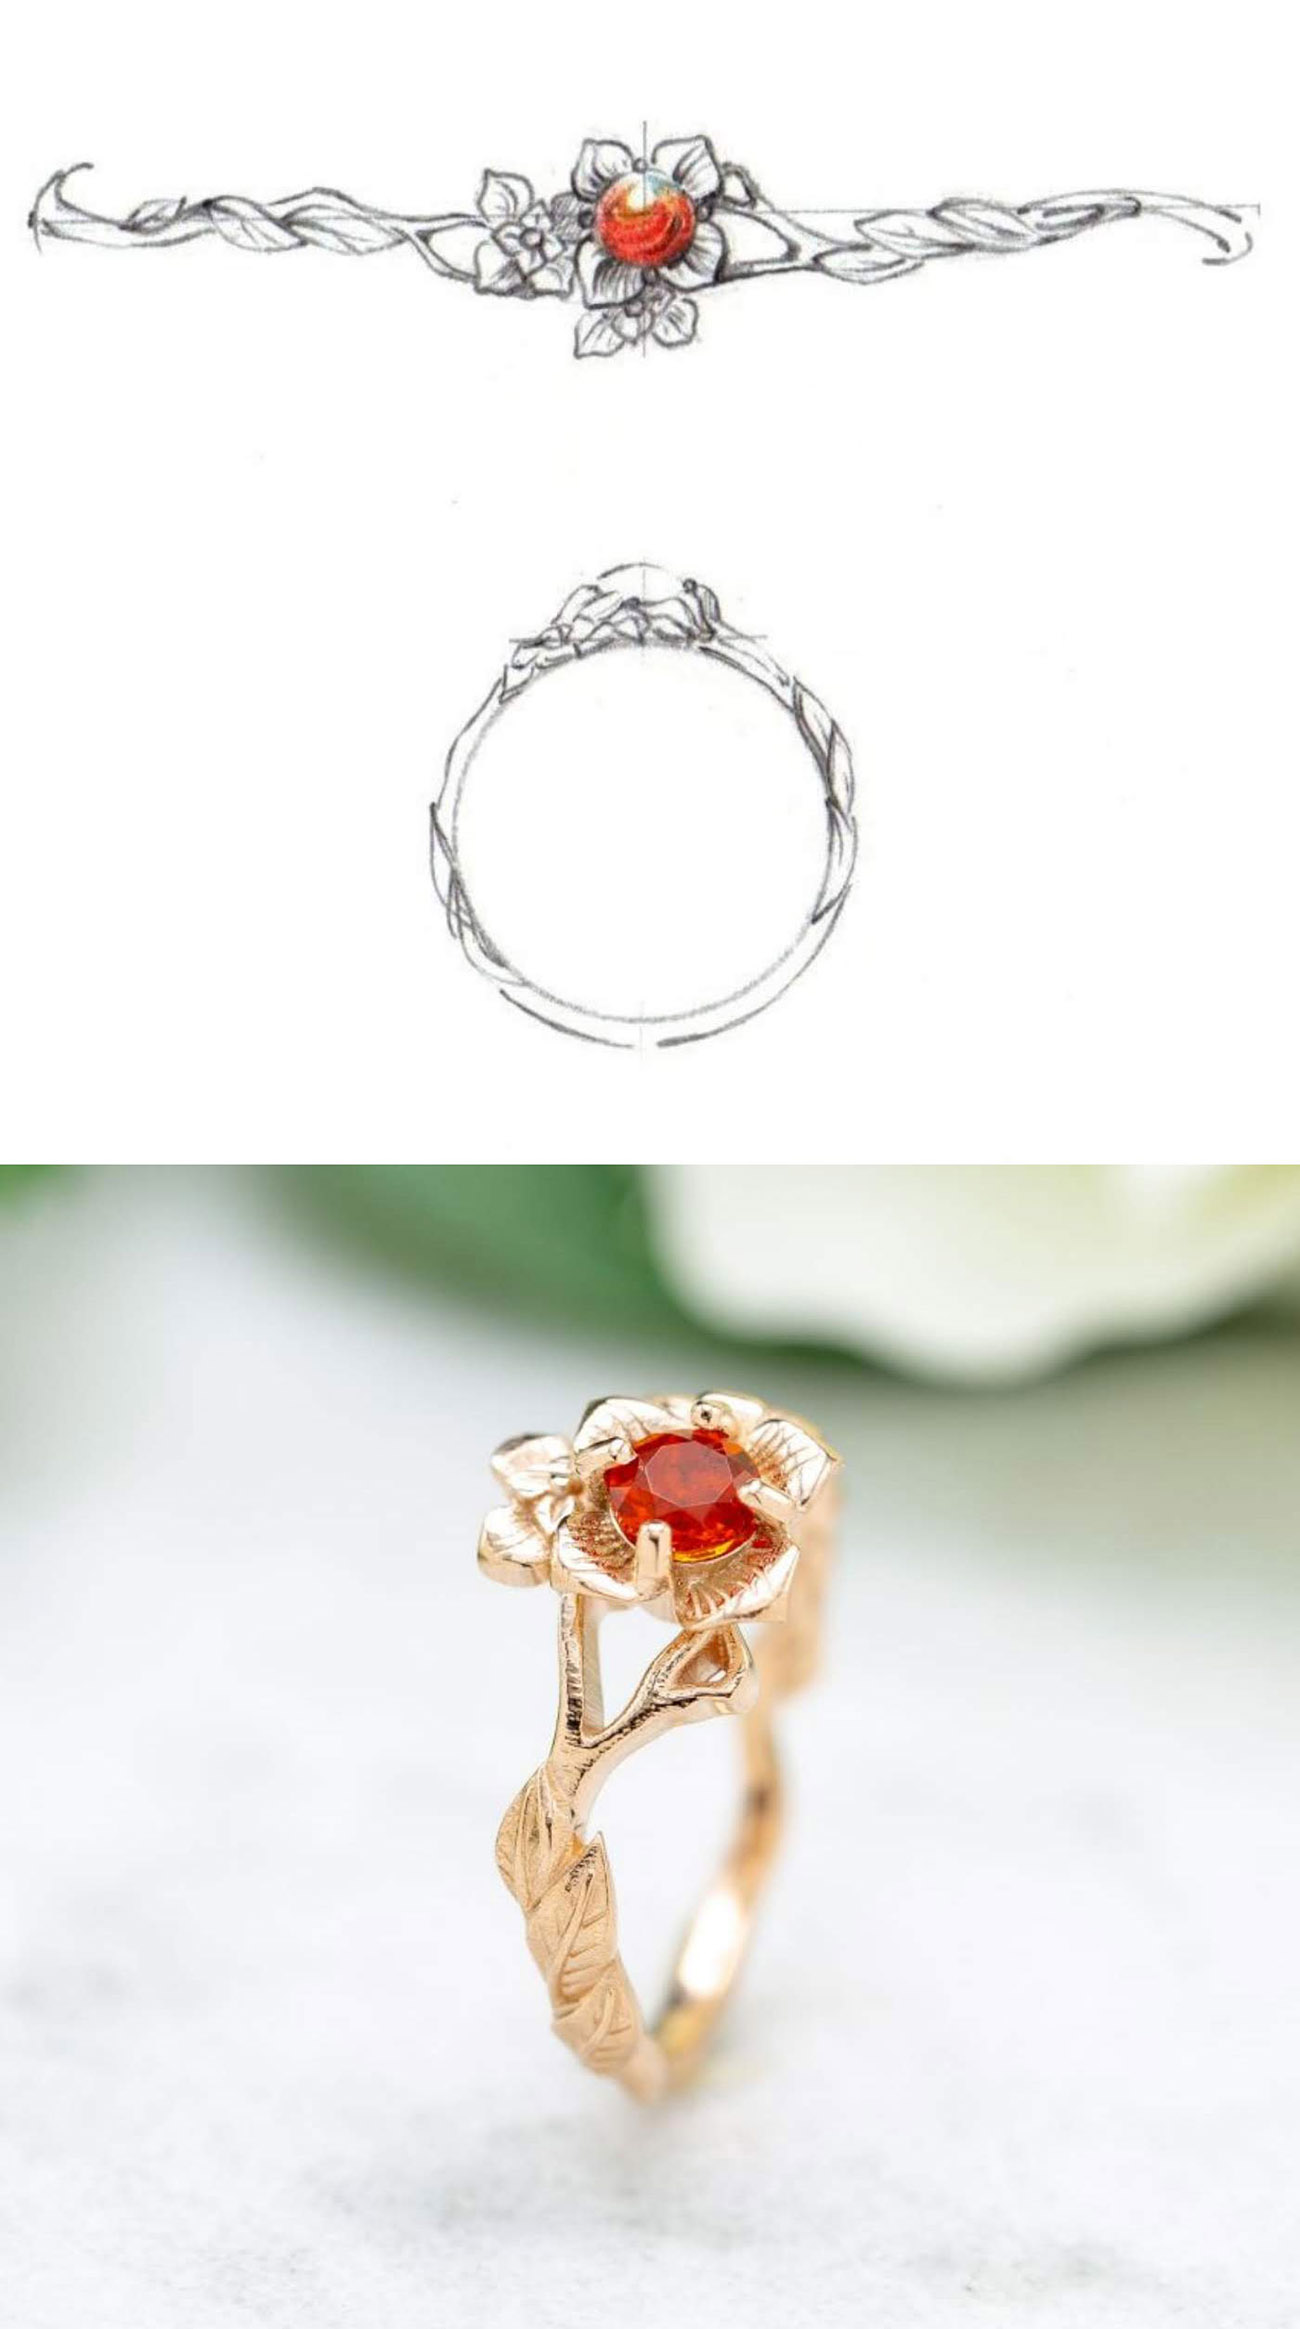 CustomMade engagement ring inspired by favorite flower